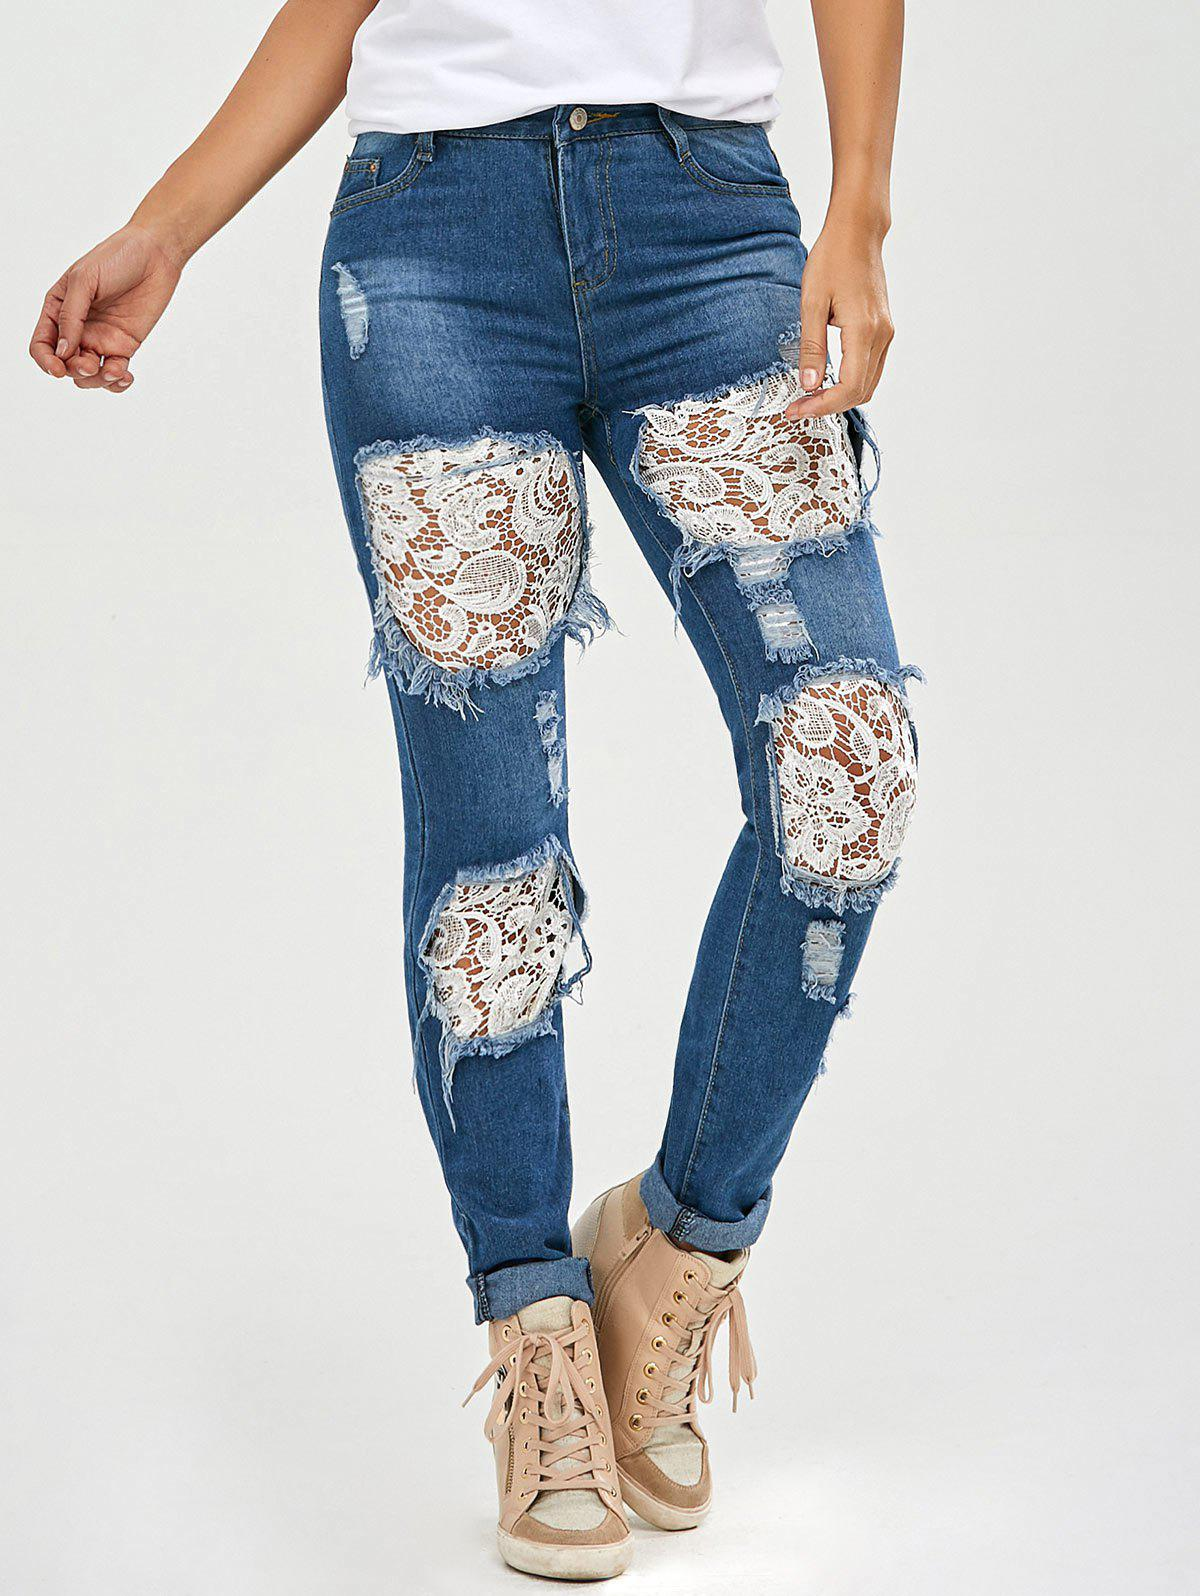 Lace Insert Skinny Ripped Jeans - DENIM BLUE S